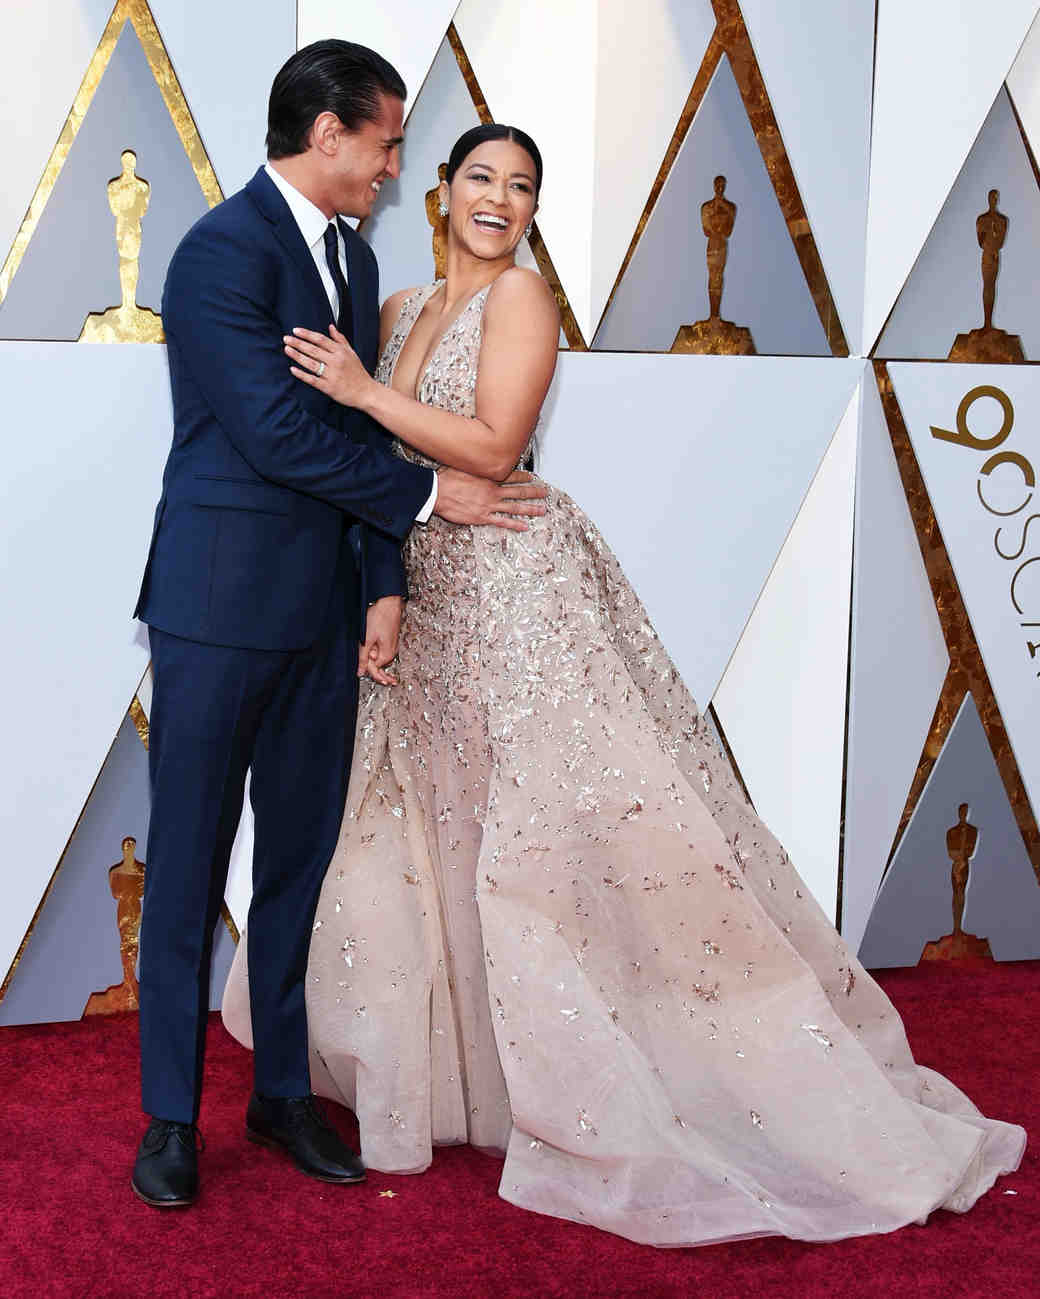 Gina Rodriguez and Joe Locicero 2018 Oscars